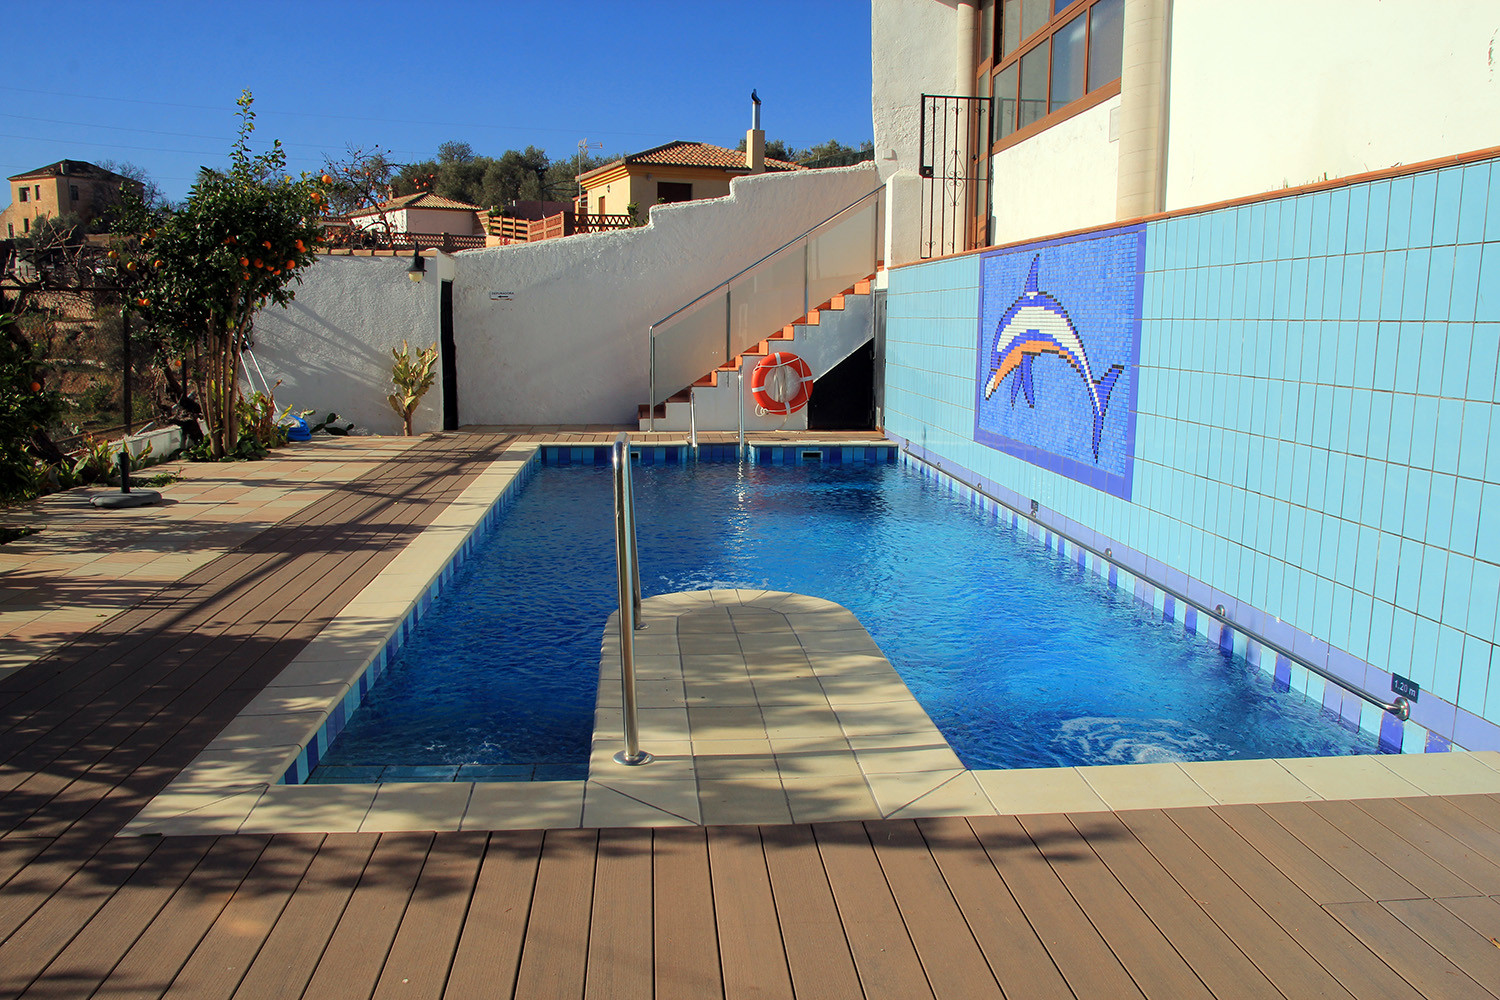 The communal swimming pool